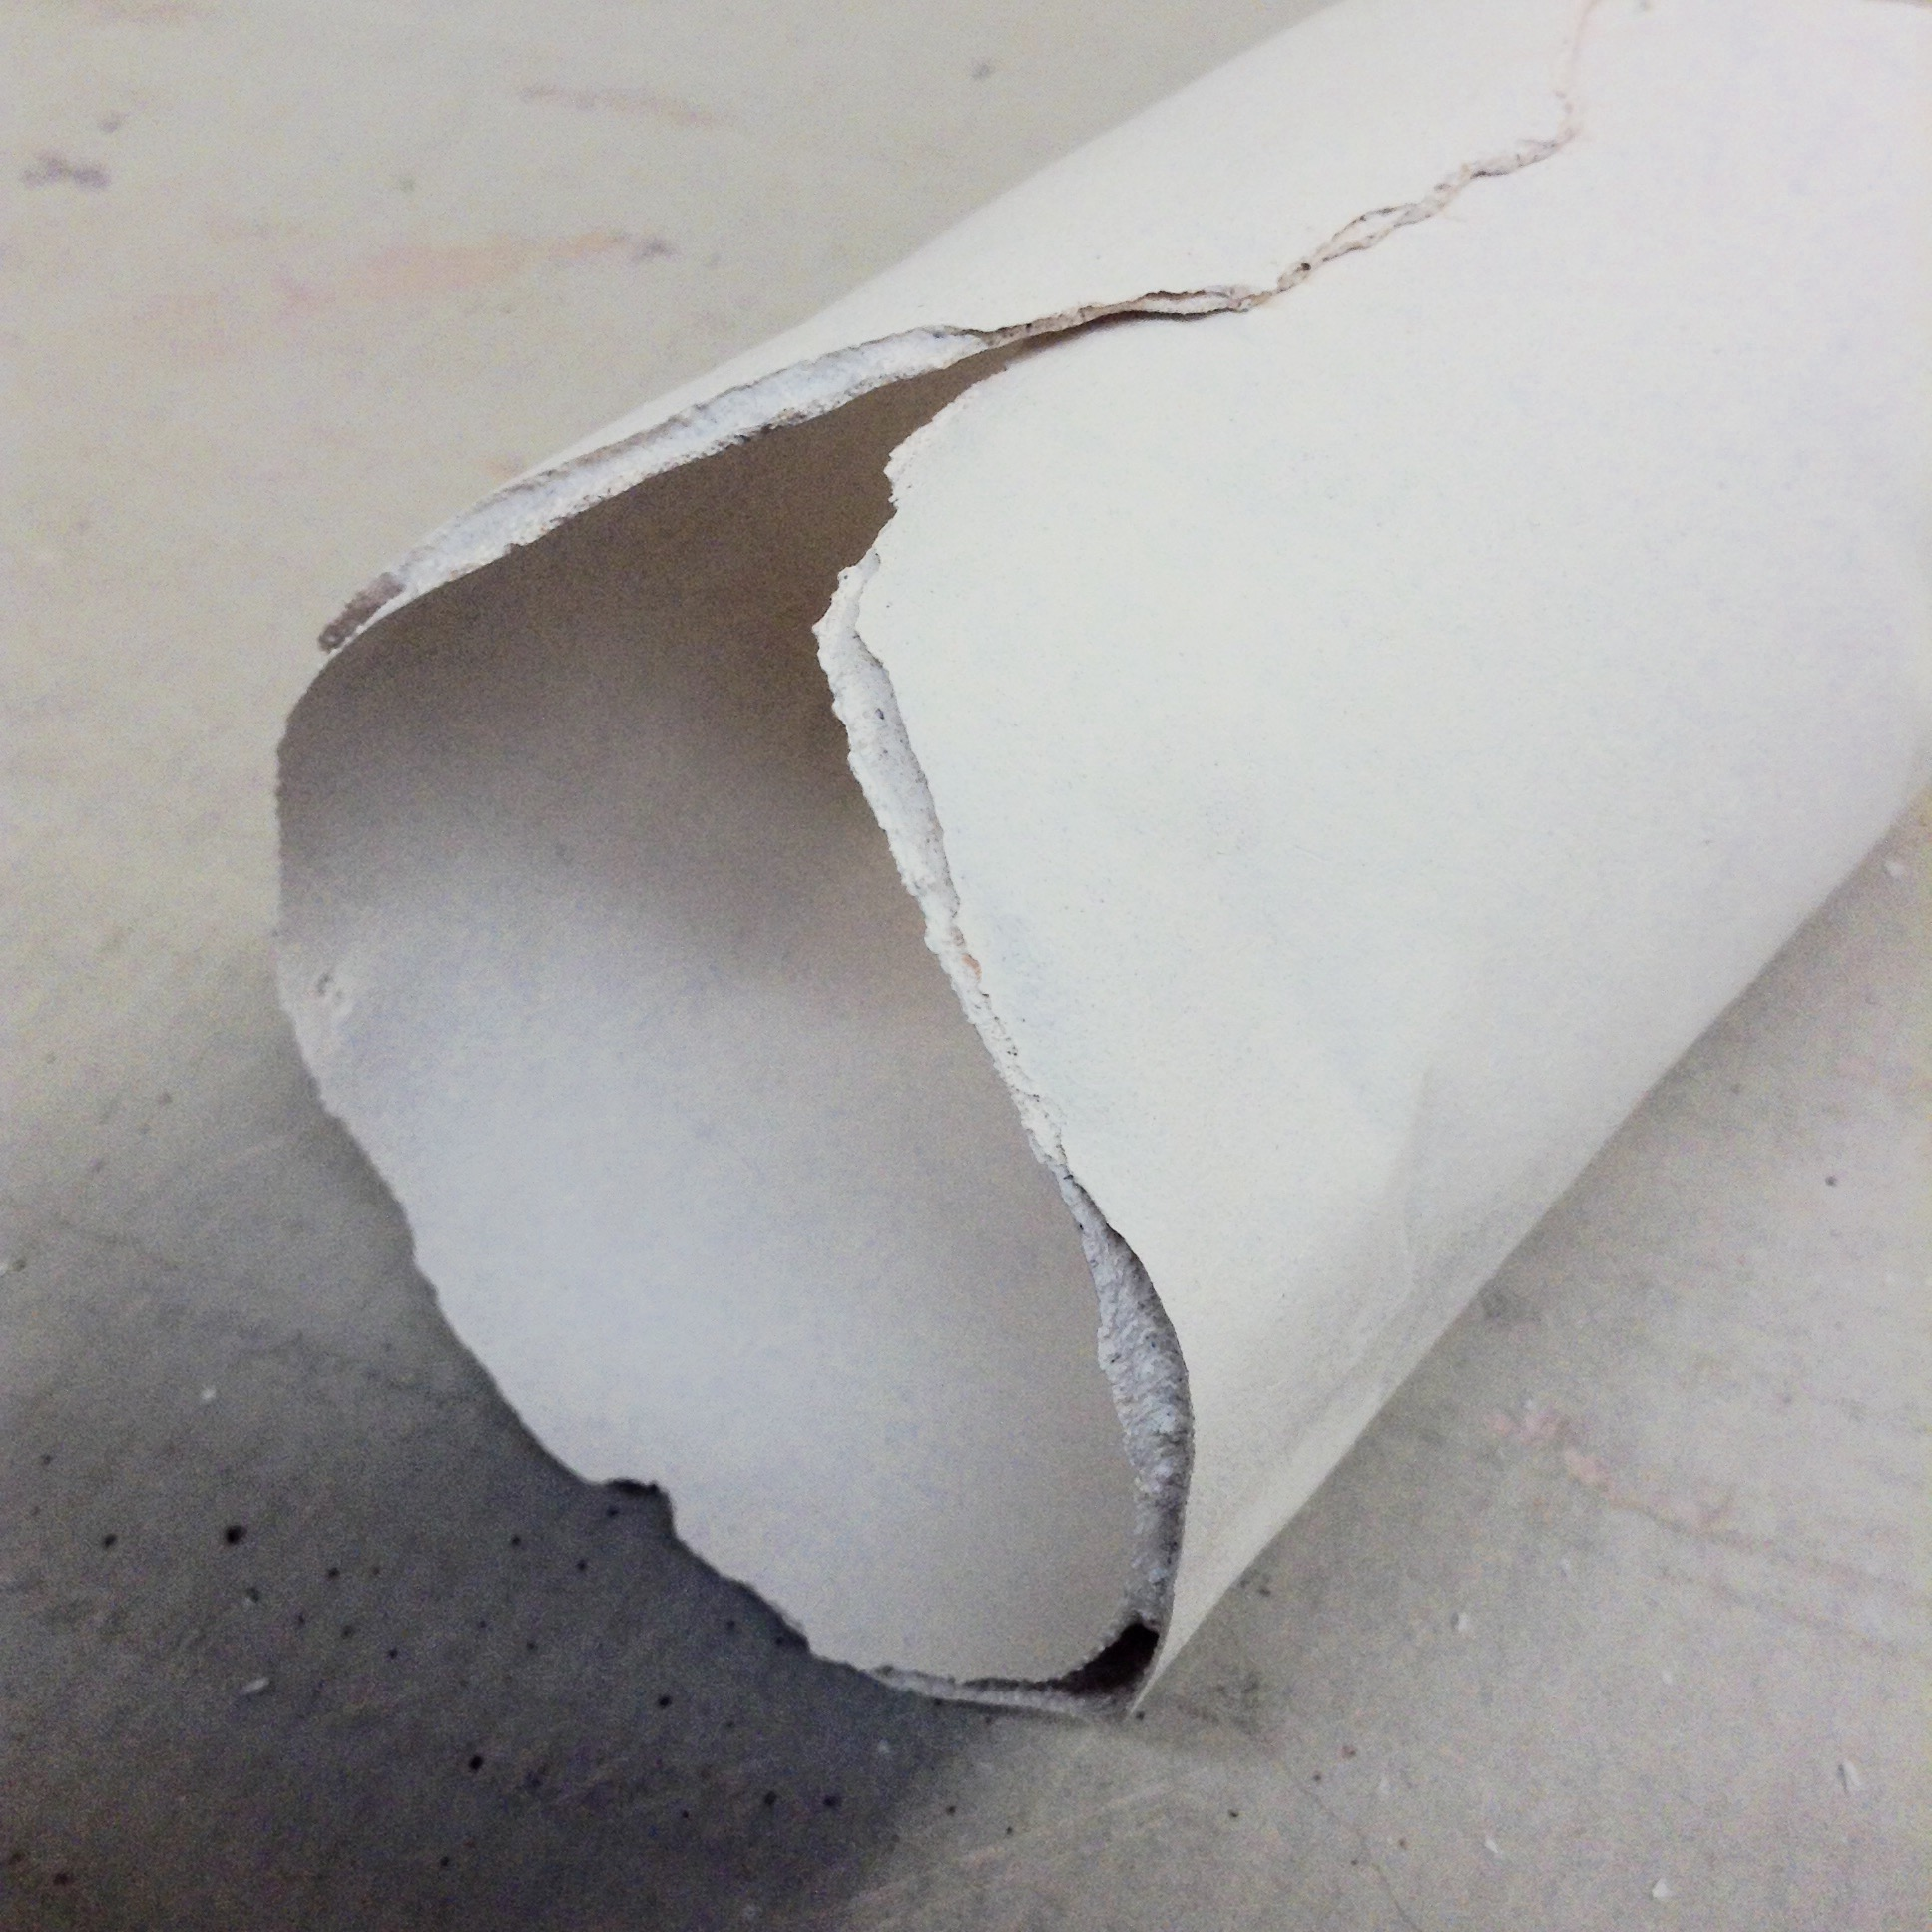 Another view of my favorite edge effect. This tube is completely enclosed on itself. It is not connected at that overlap because paper was between the clay layers. If this piece were glazed, the glaze would fuse those edges together for stability.